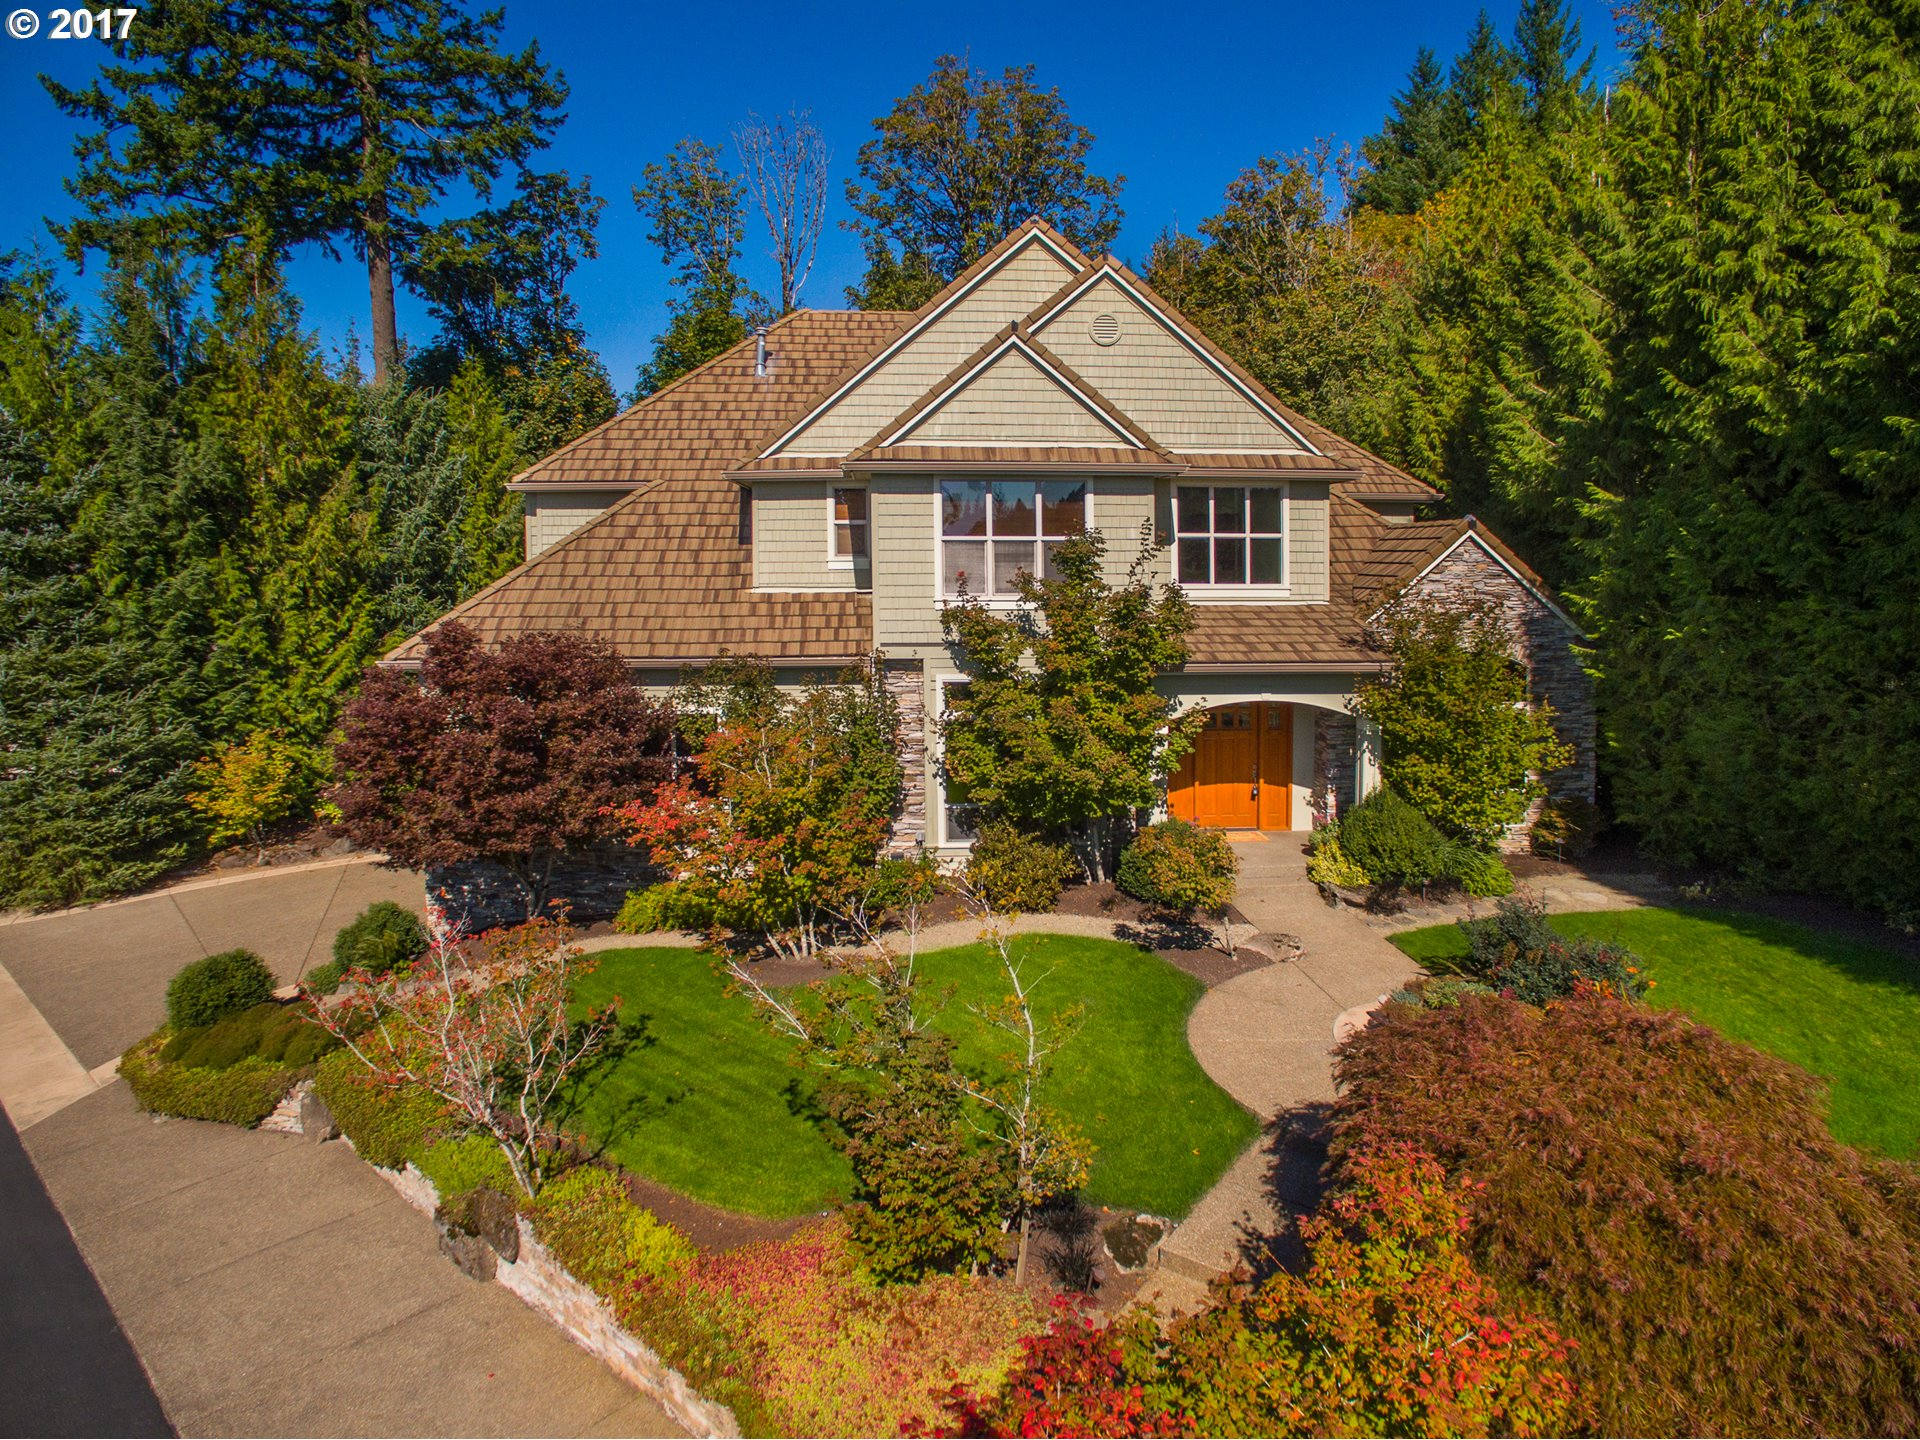 376 NW 81ST PL, Portland OR 97229